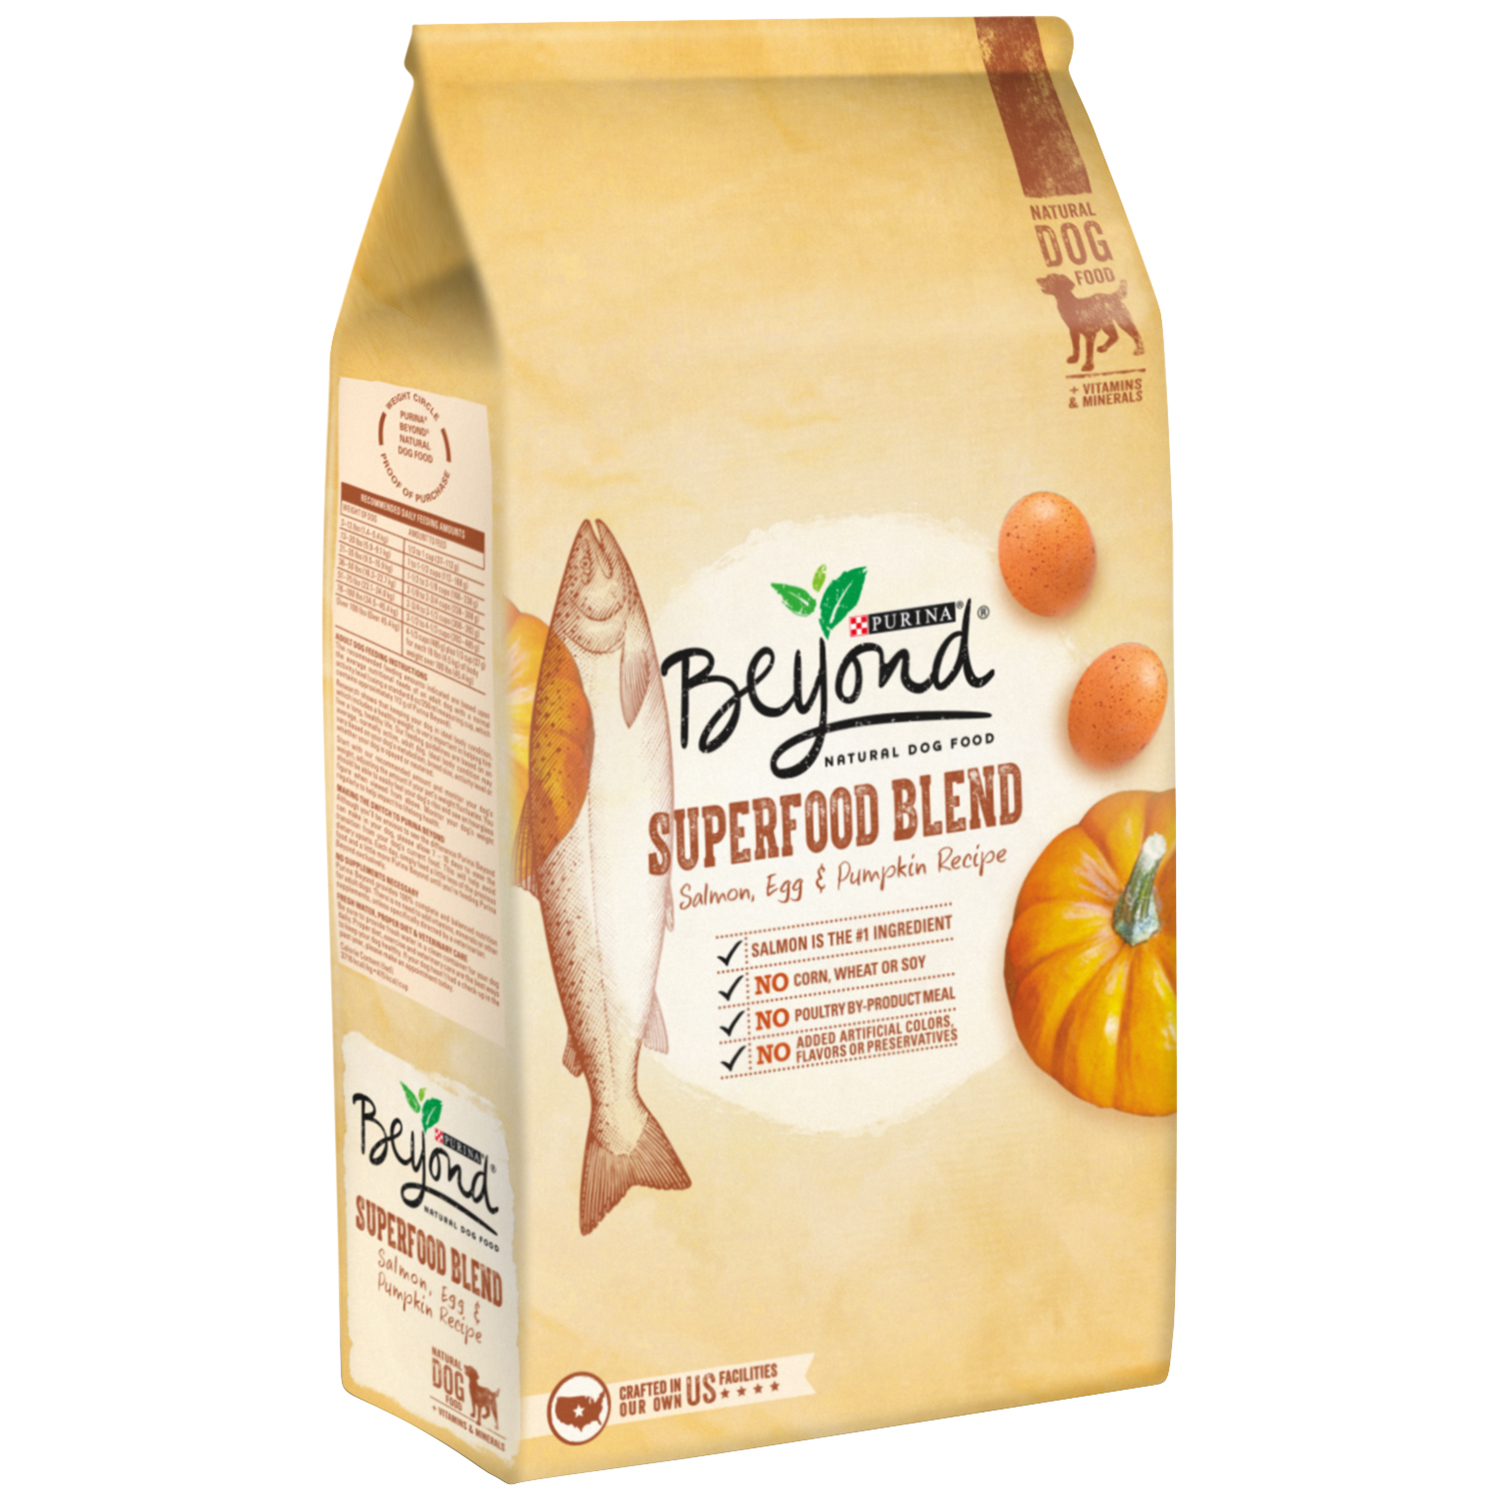 Purina Beyond Superfood Blend Salmon, Egg & Pumpkin Recipe Natural Dog Food 14.5 lb. Bag